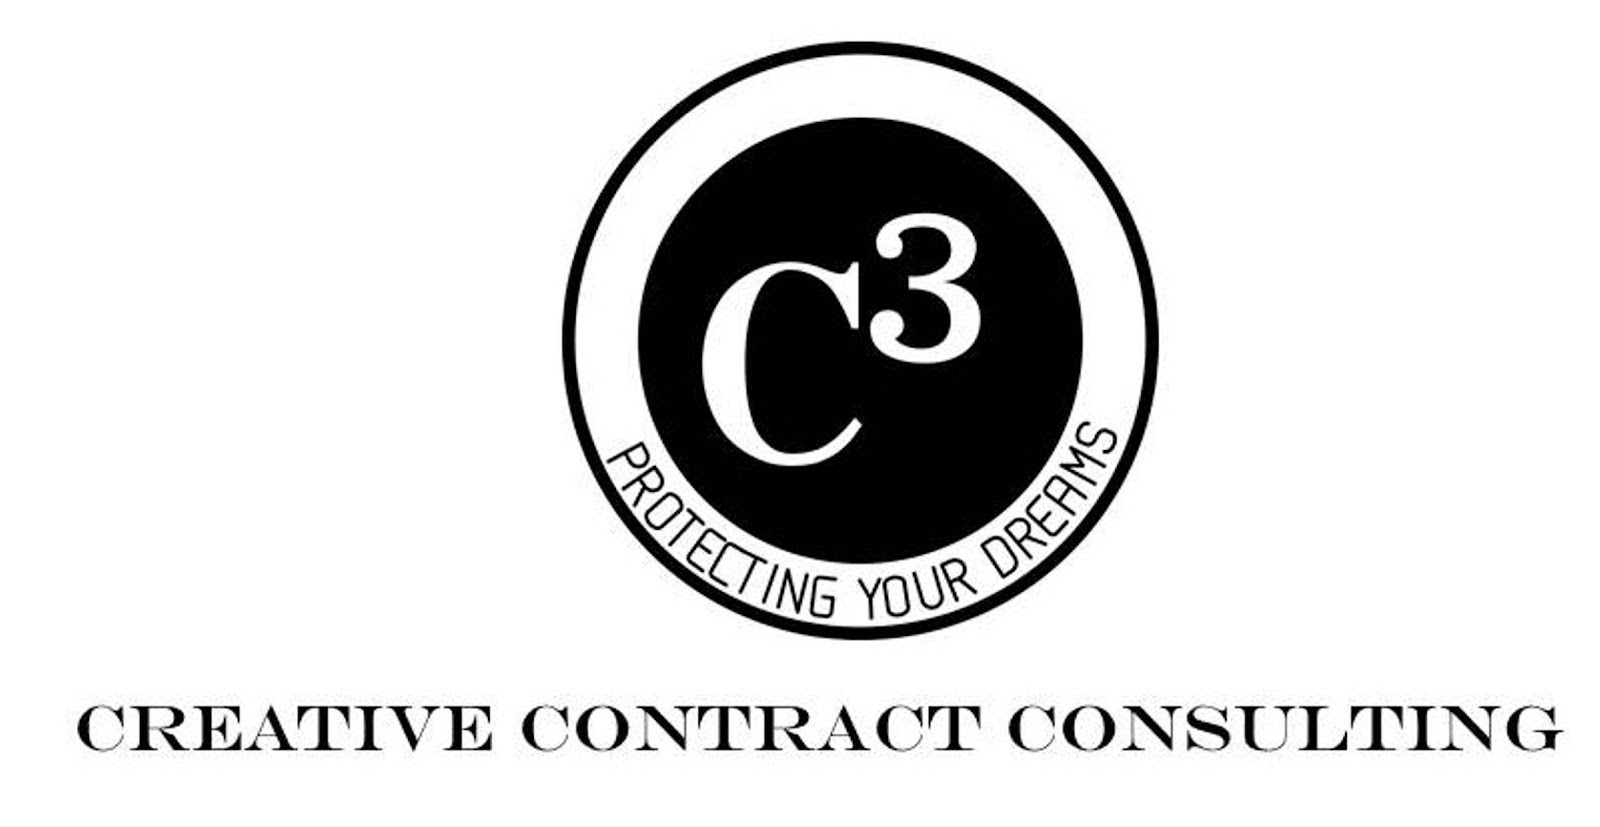 C3 Letterhead Bottom.jpg